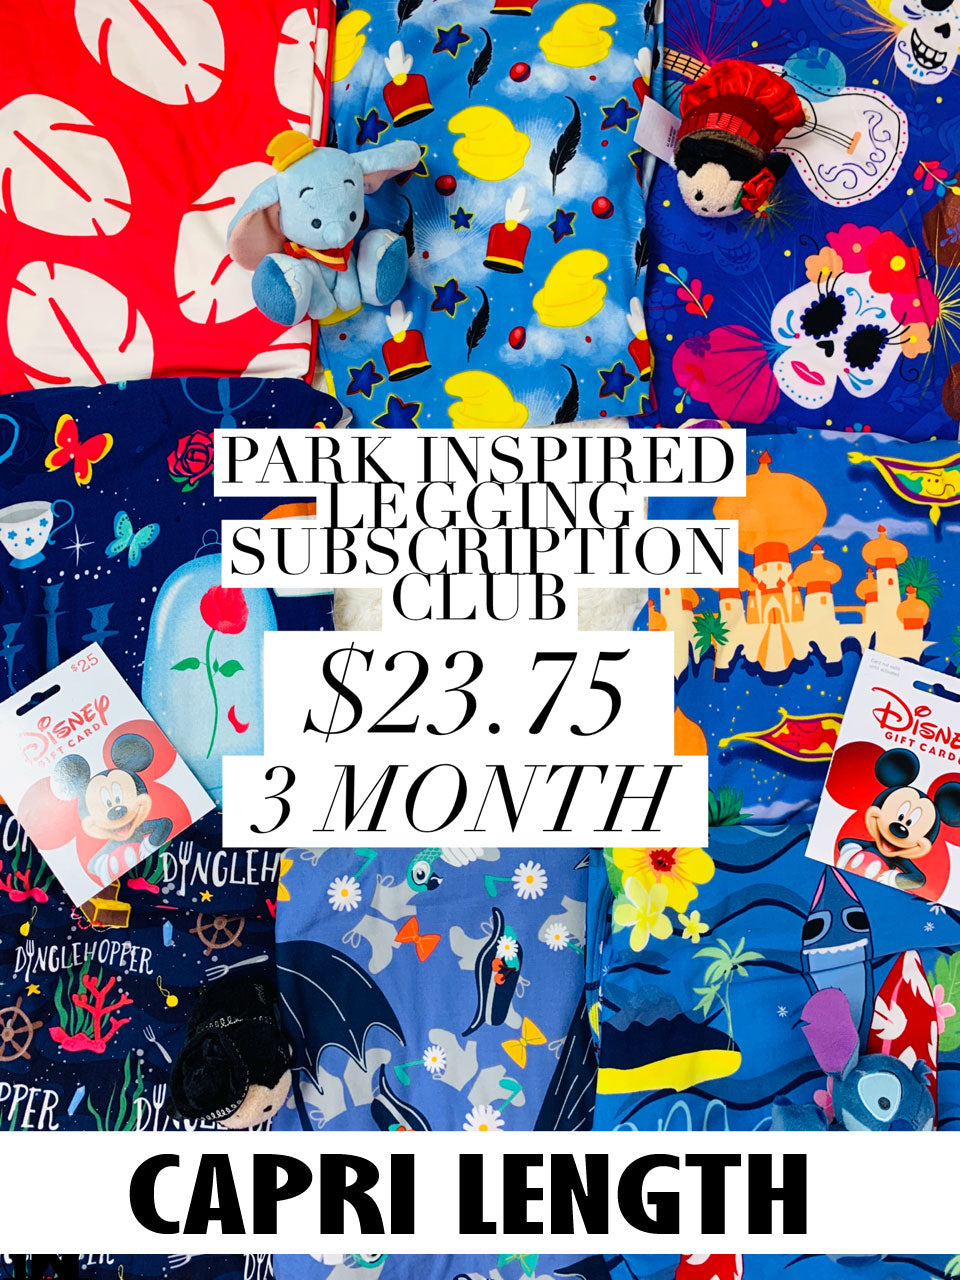 Park Inspired Capri Leggings Subscription Club - 3 Month Subscription